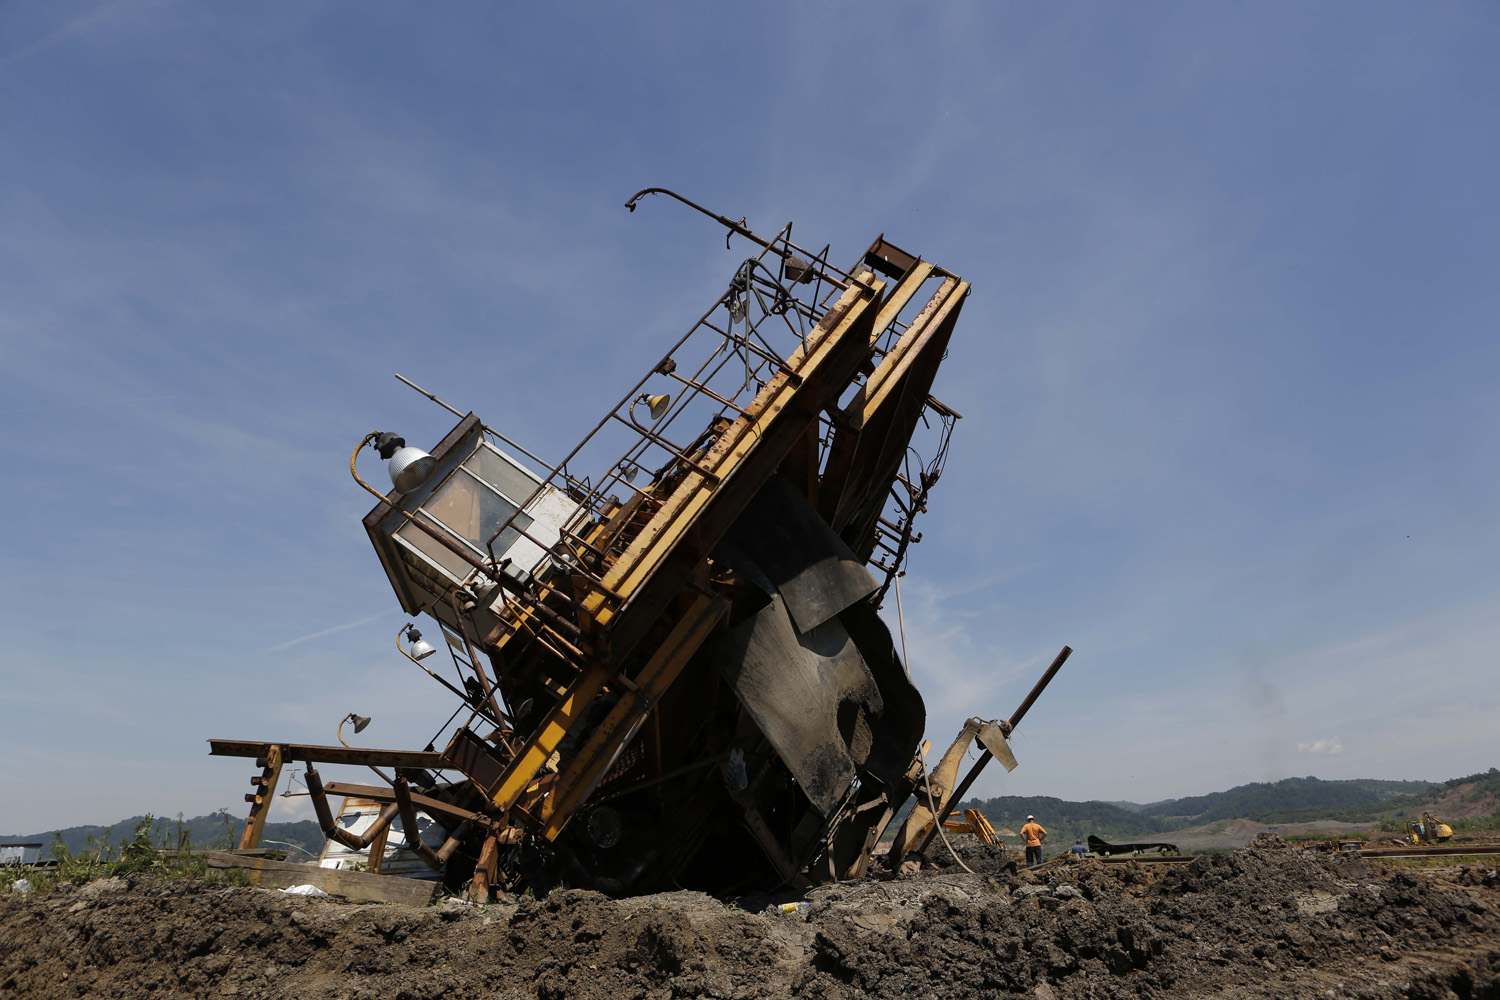 May 22, 2014. Bosnian workers inspect the damage on heavy machinery after devastating flooding at a coal mine  in the village of Sikulje near the Bosnian town of Lukavac.